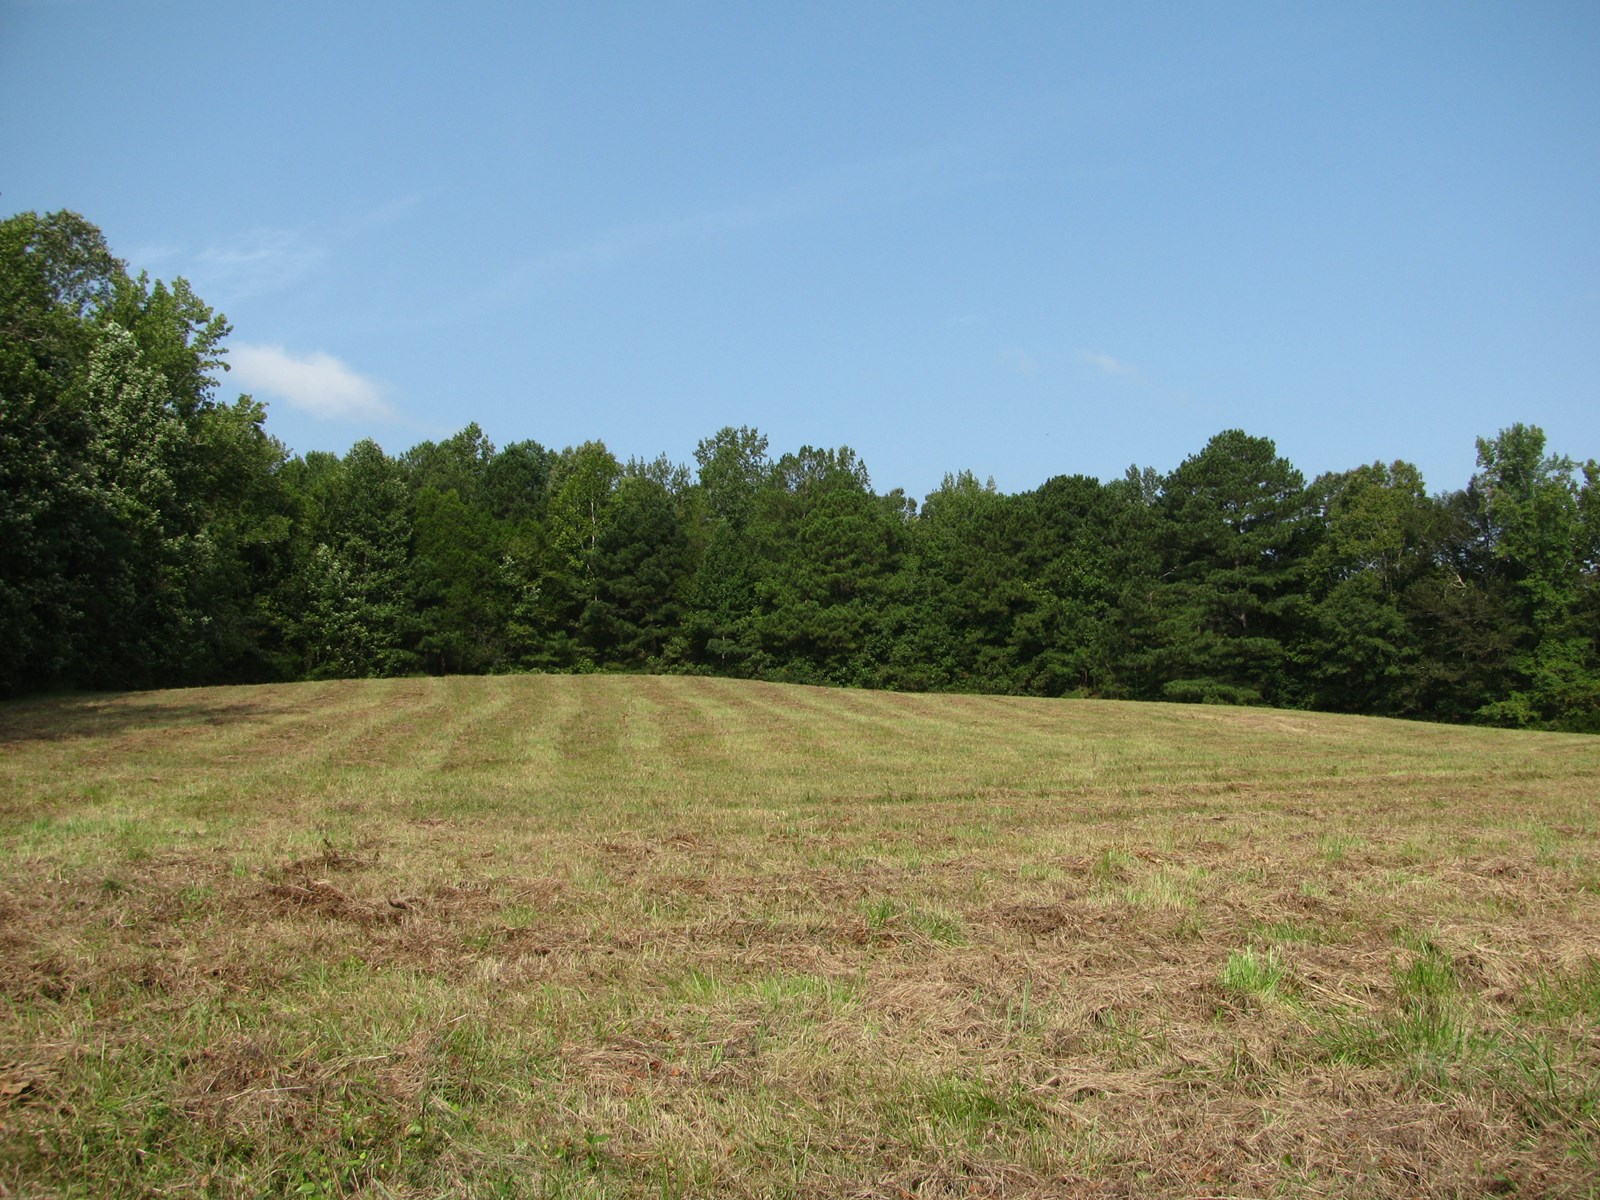 LAND FOR SALE IN TN, BUILDING SITES, PRIVATE- 5.5 ACRES